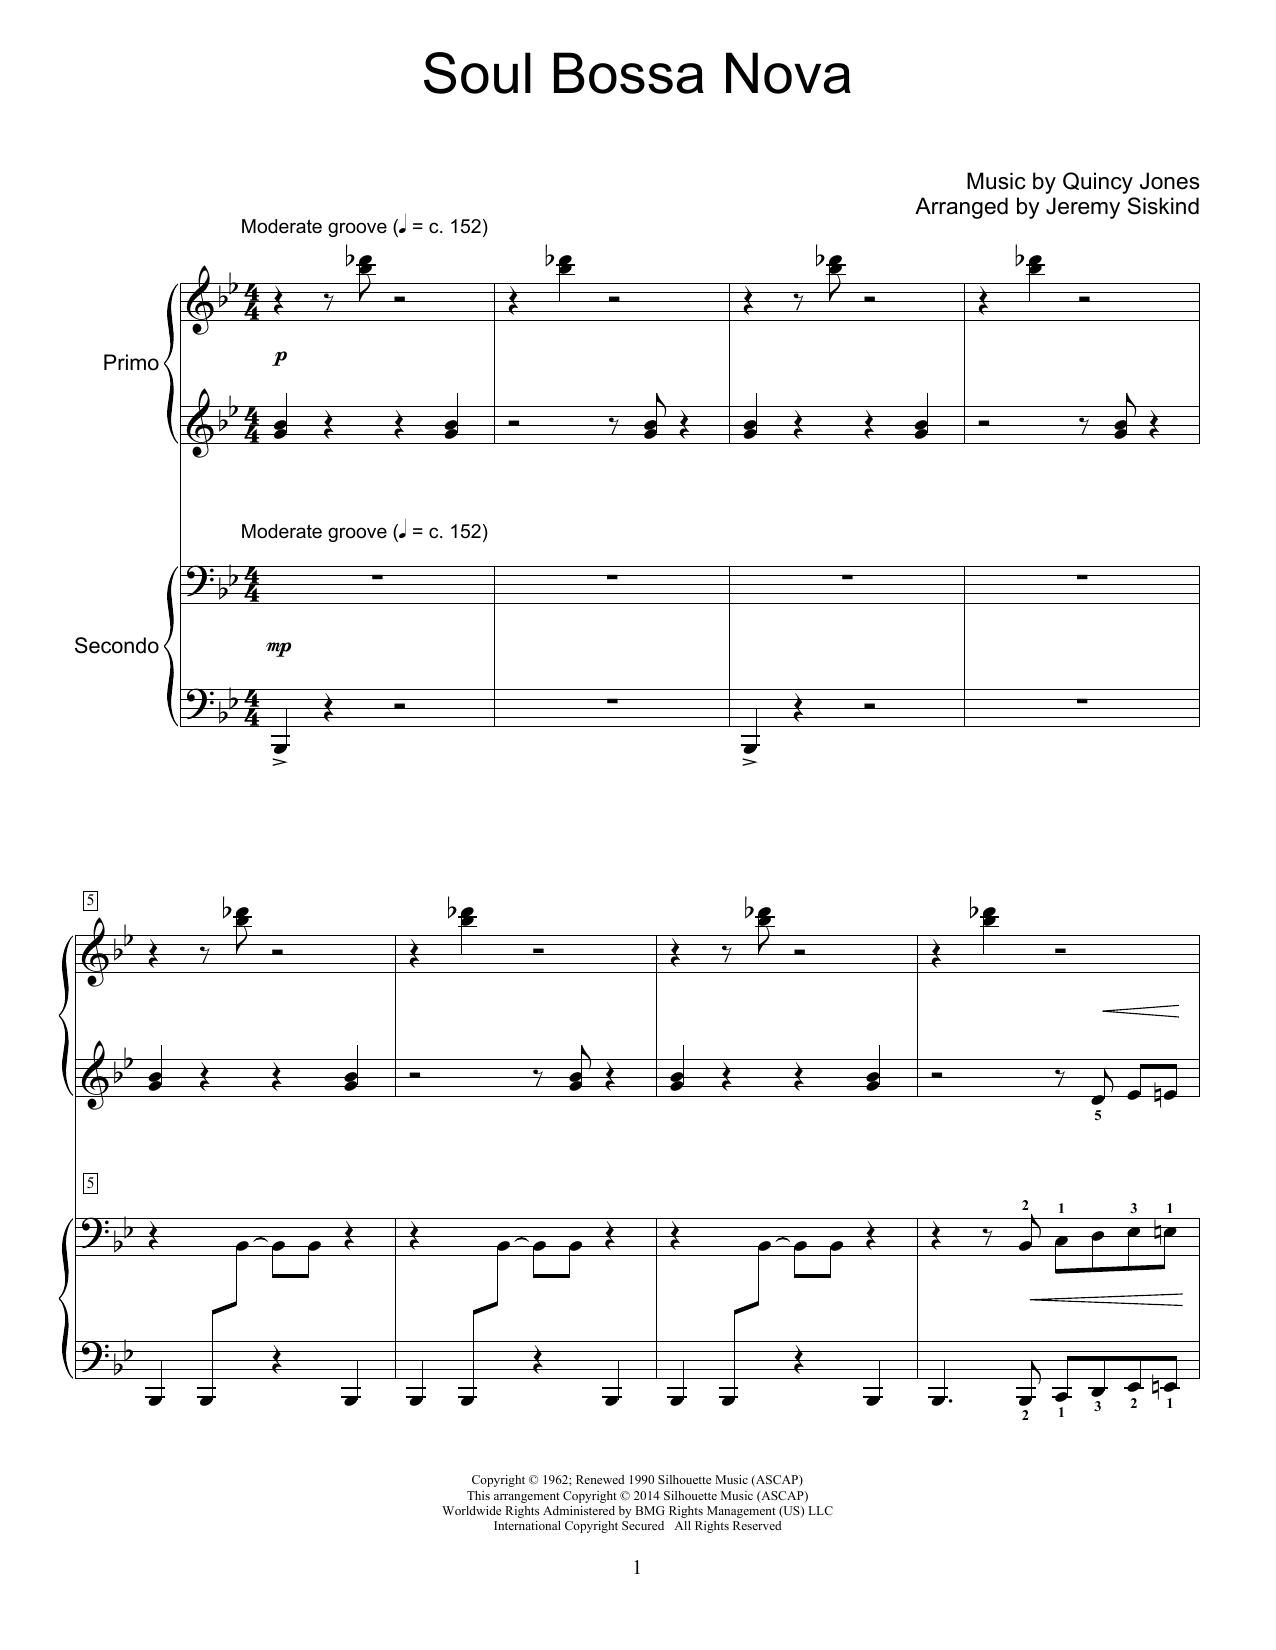 Soul Bossa Nova Sheet Music